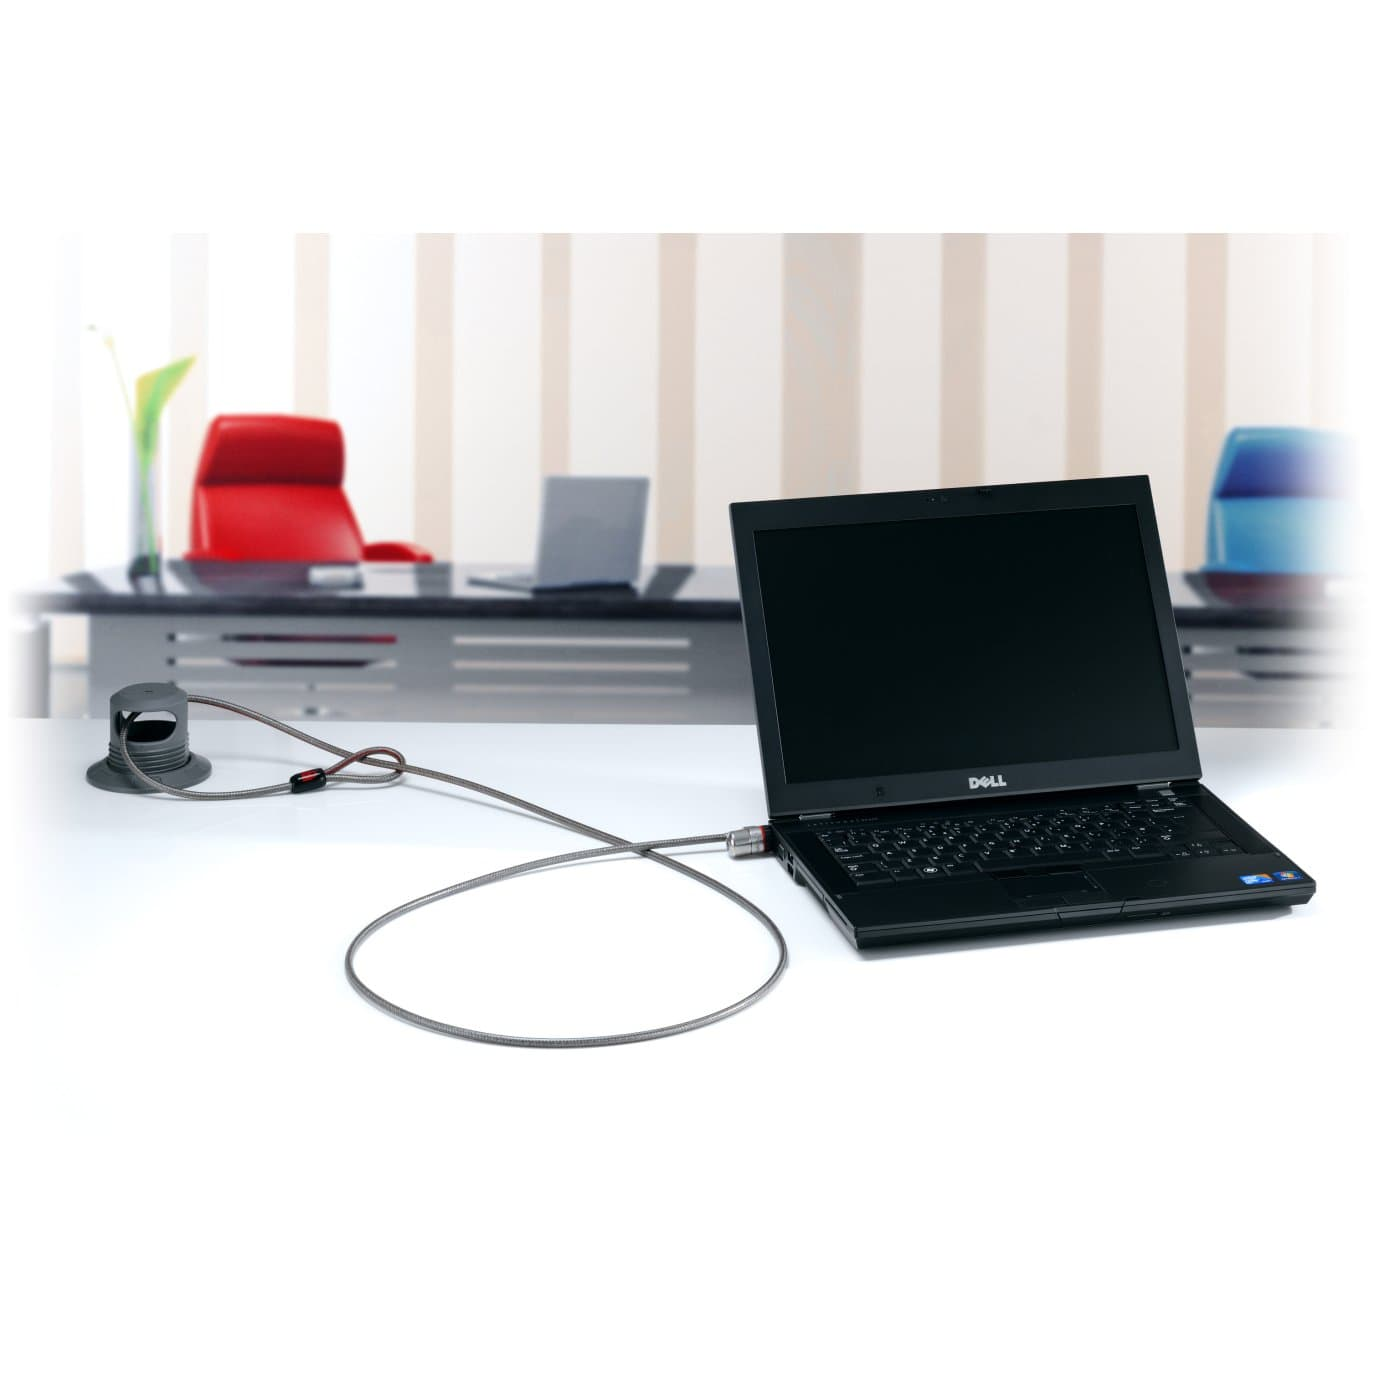 most grommet cable grommets computer splendid cord with hole desk port innovation power modules wire cover under outlet